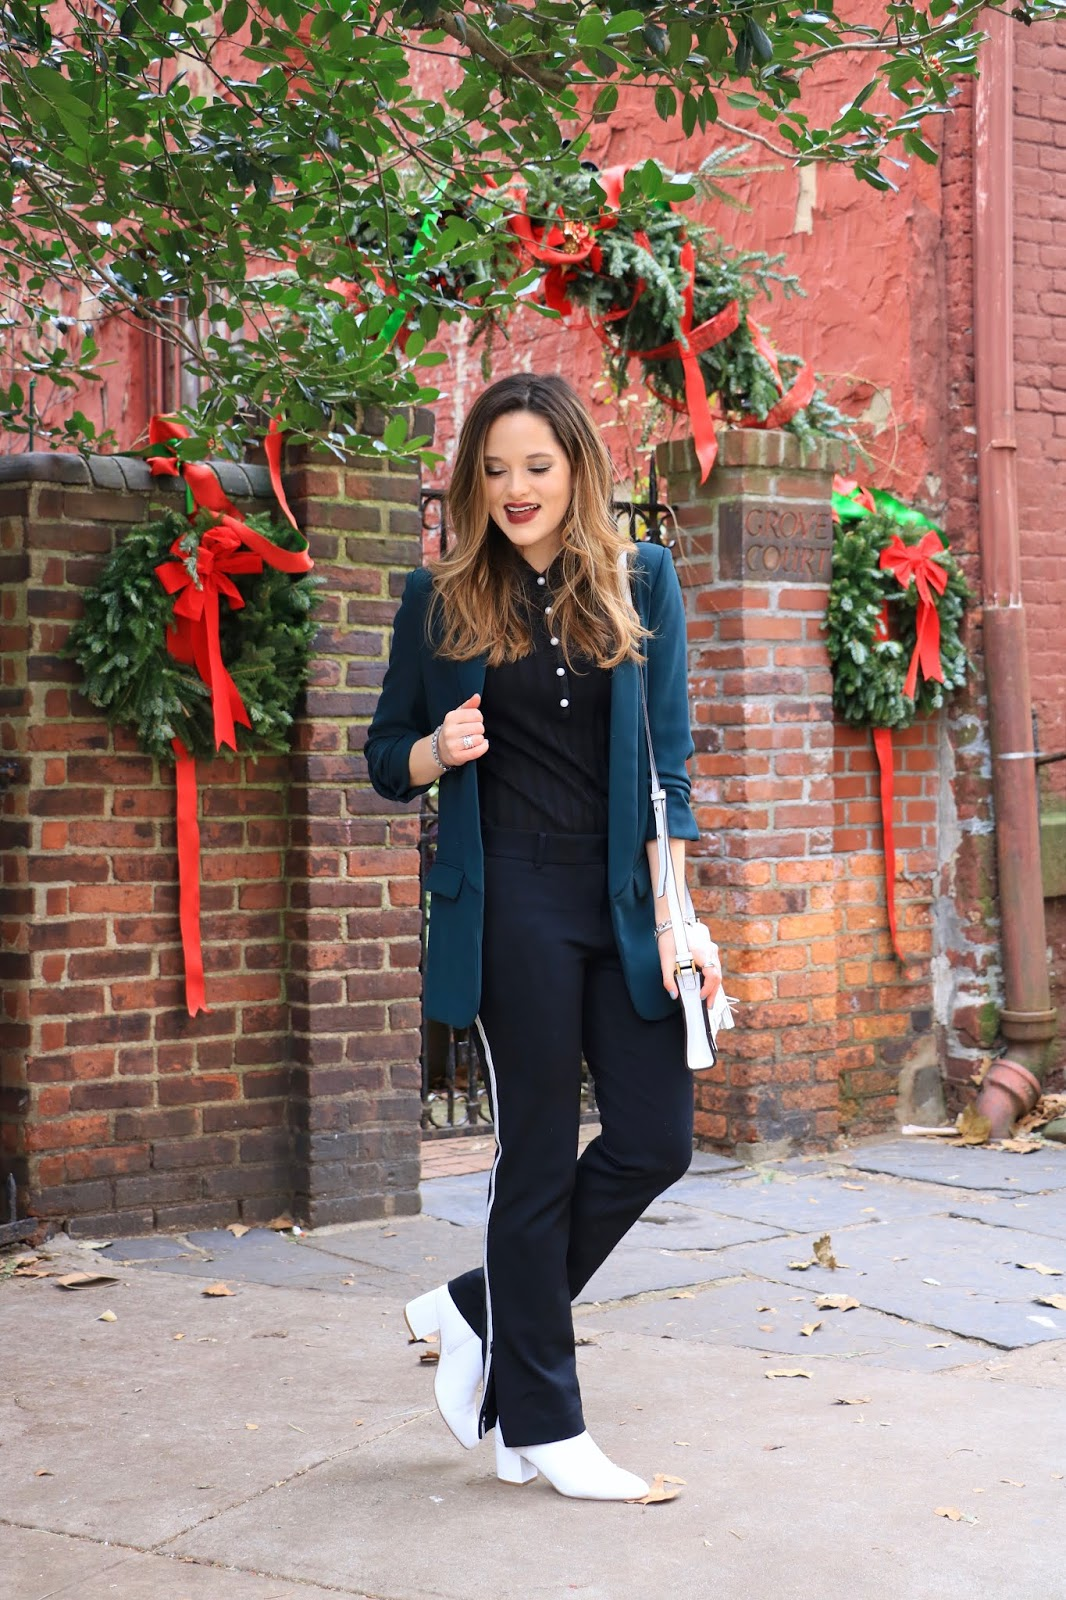 Nyc fashion blogger Kathleen Harper showing how to wear formal track pants